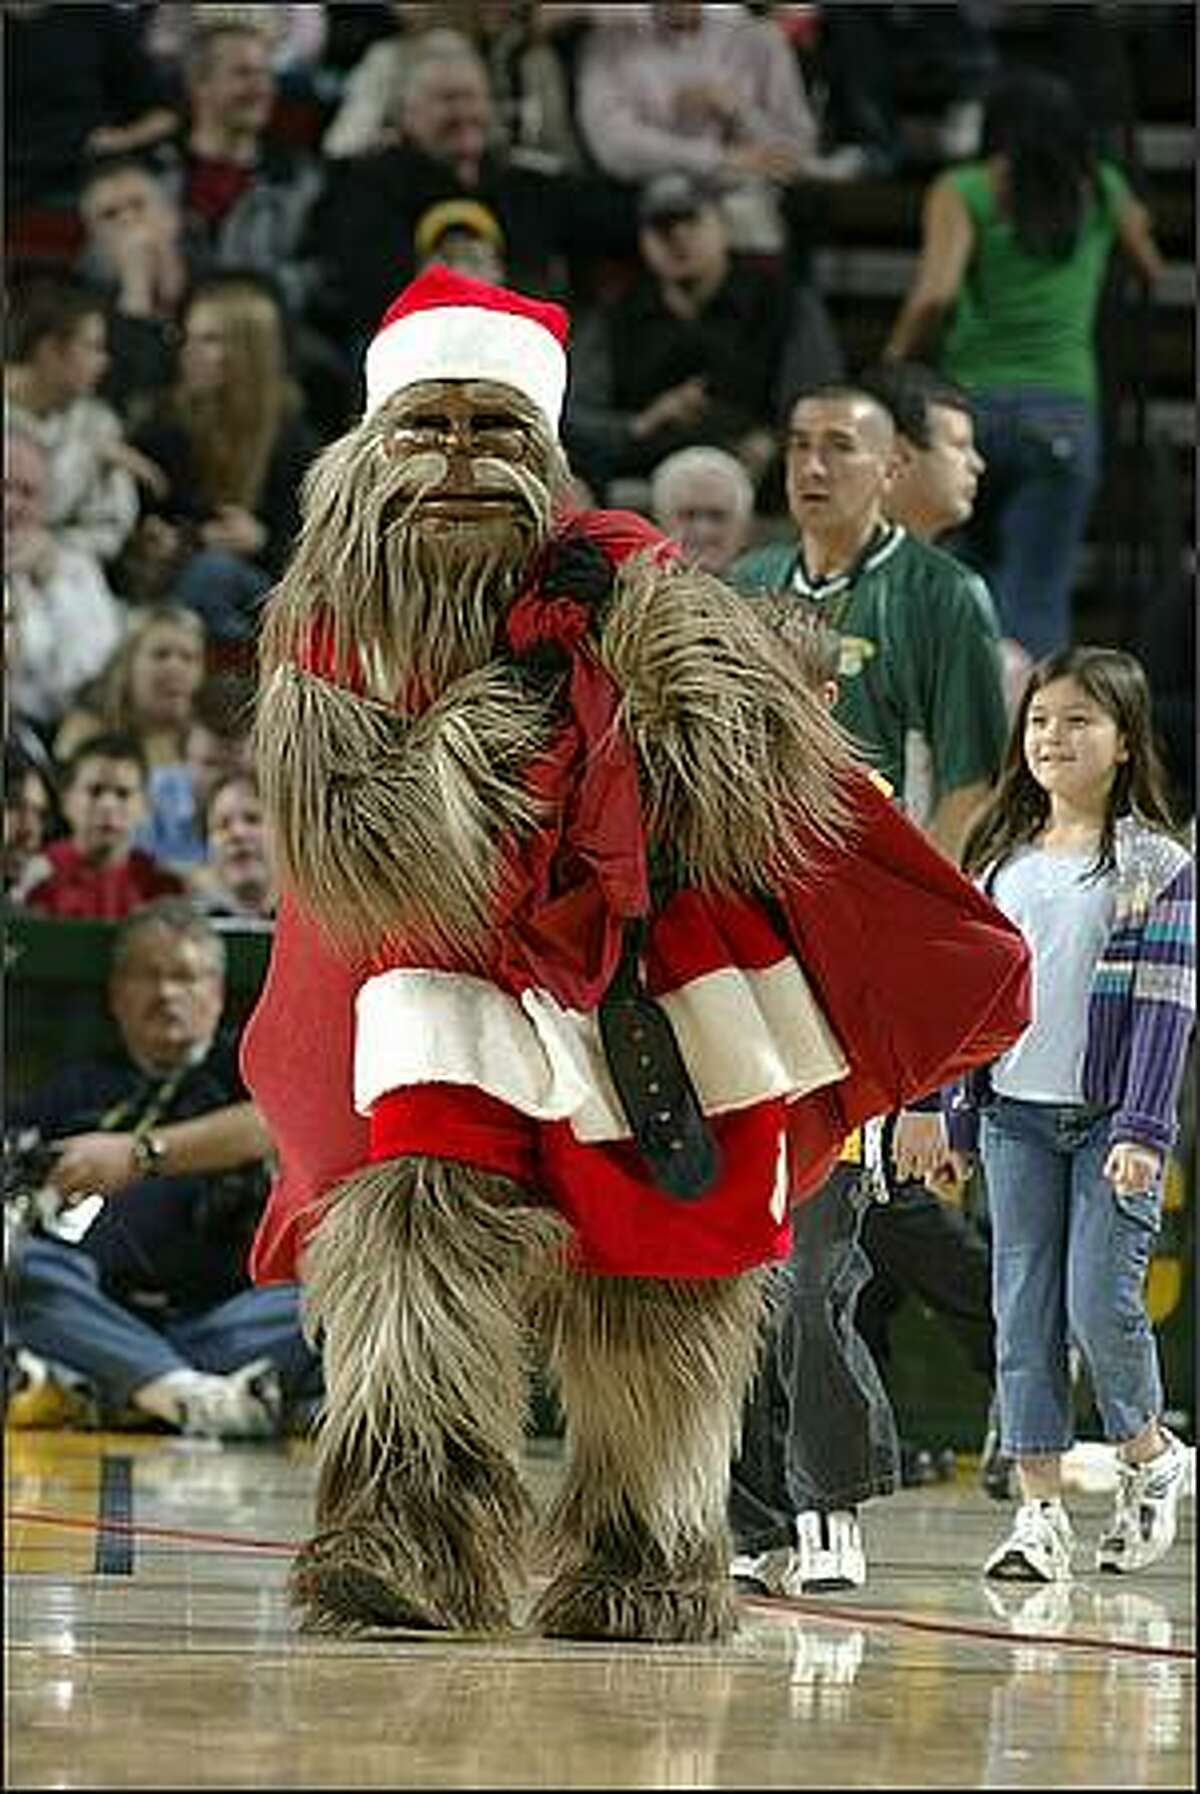 Team mascot Squatch, dressed as Santa Squatch, carries his bag of goodies onto the court during a time out against the Denver Nuggets. Dec 22, 2004